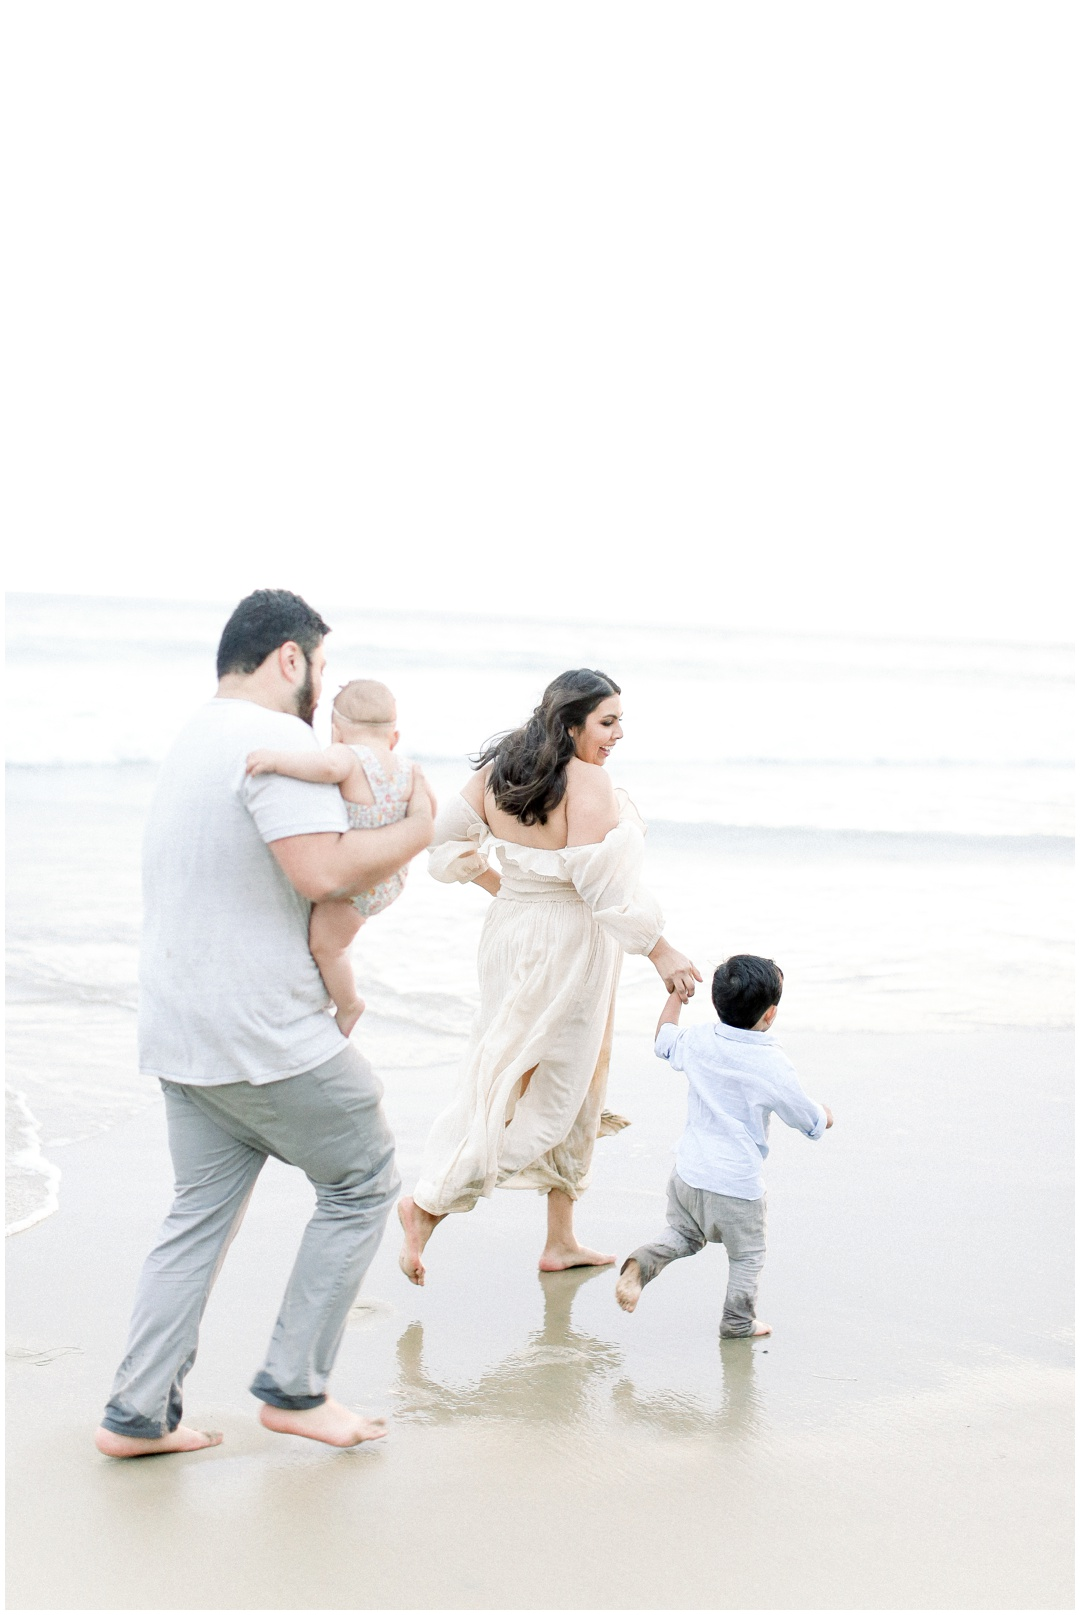 Newport_Beach_Newborn_Light_Airy_Natural_Photographer_Newport_Beach_Photographer_Orange_County_Family_Photographer_Cori_Kleckner_Photography_Huntington_Beach_Photographer_Family_OC_Newborn_Natalie_Nunez_Thomas_Nunez_Natalie_Roca_Rosh_Nunez_Family_3579.jpg